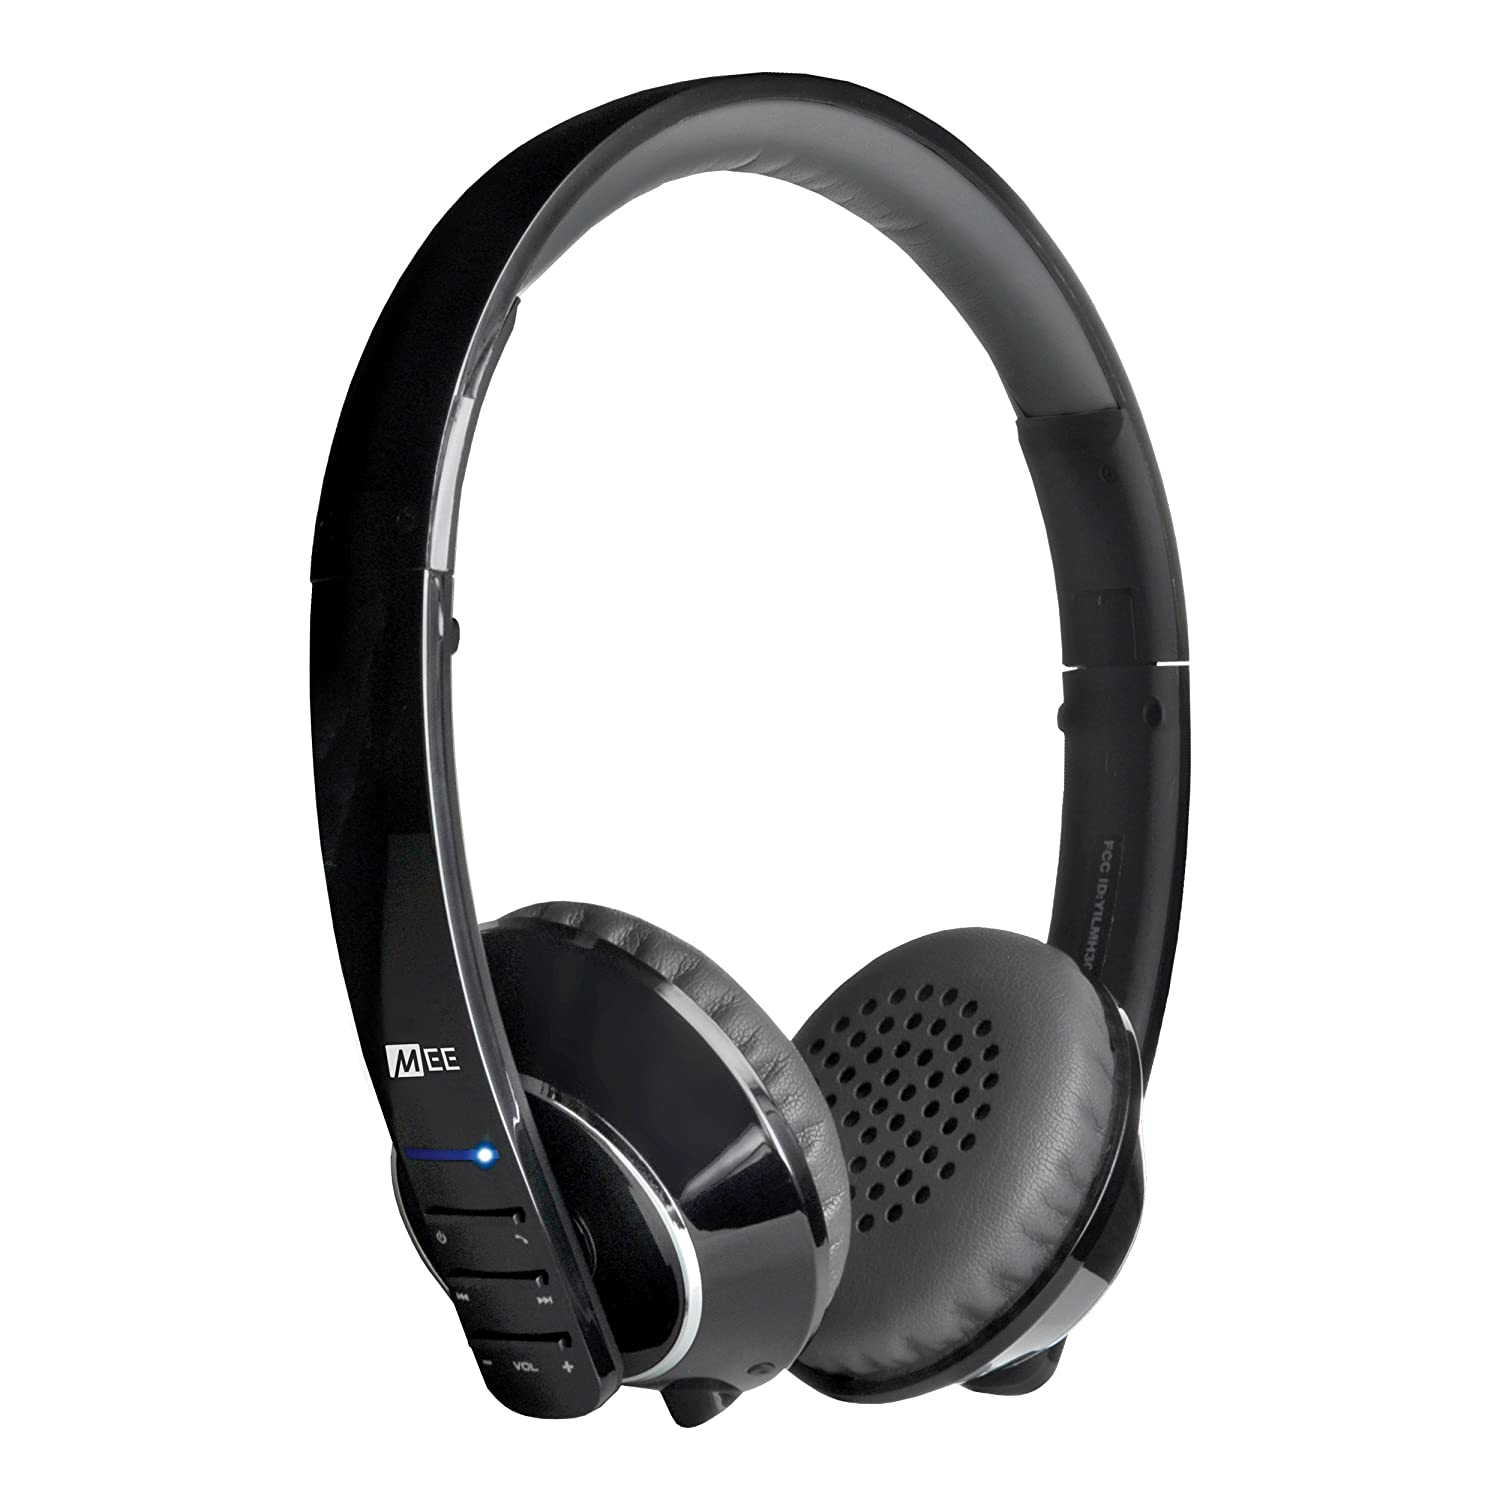 MEE audio Runaway 4.0 Bluetooth Stereo Wireless + Wired Headphones with Microphone (Black)